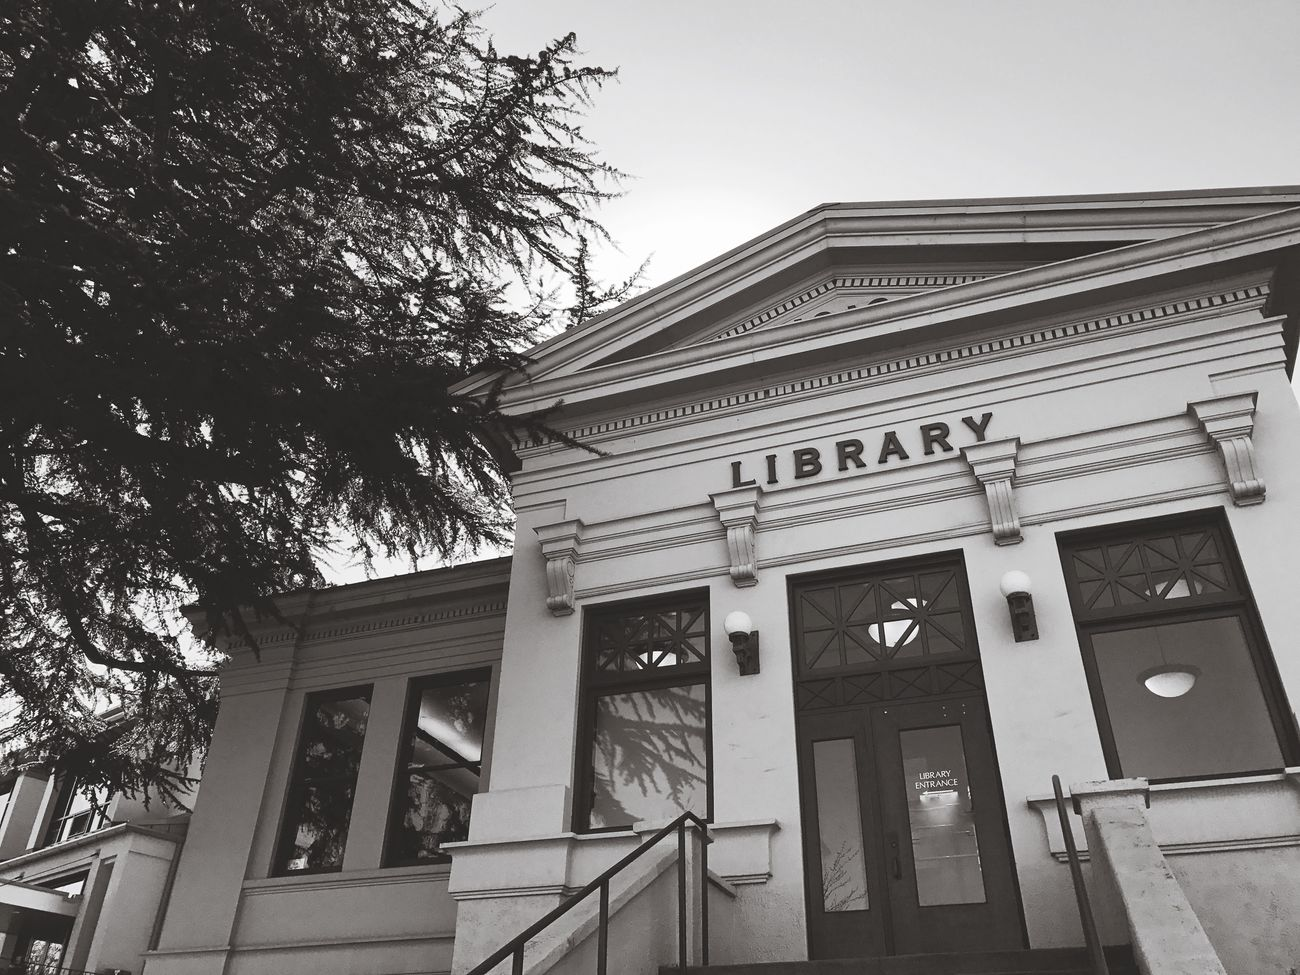 Iibrary Architecture Building Exterior Built Structure Low Angle View Architectural Column No People Tree Outdoors Sky Day Read A Book Public Library Ashland, OR